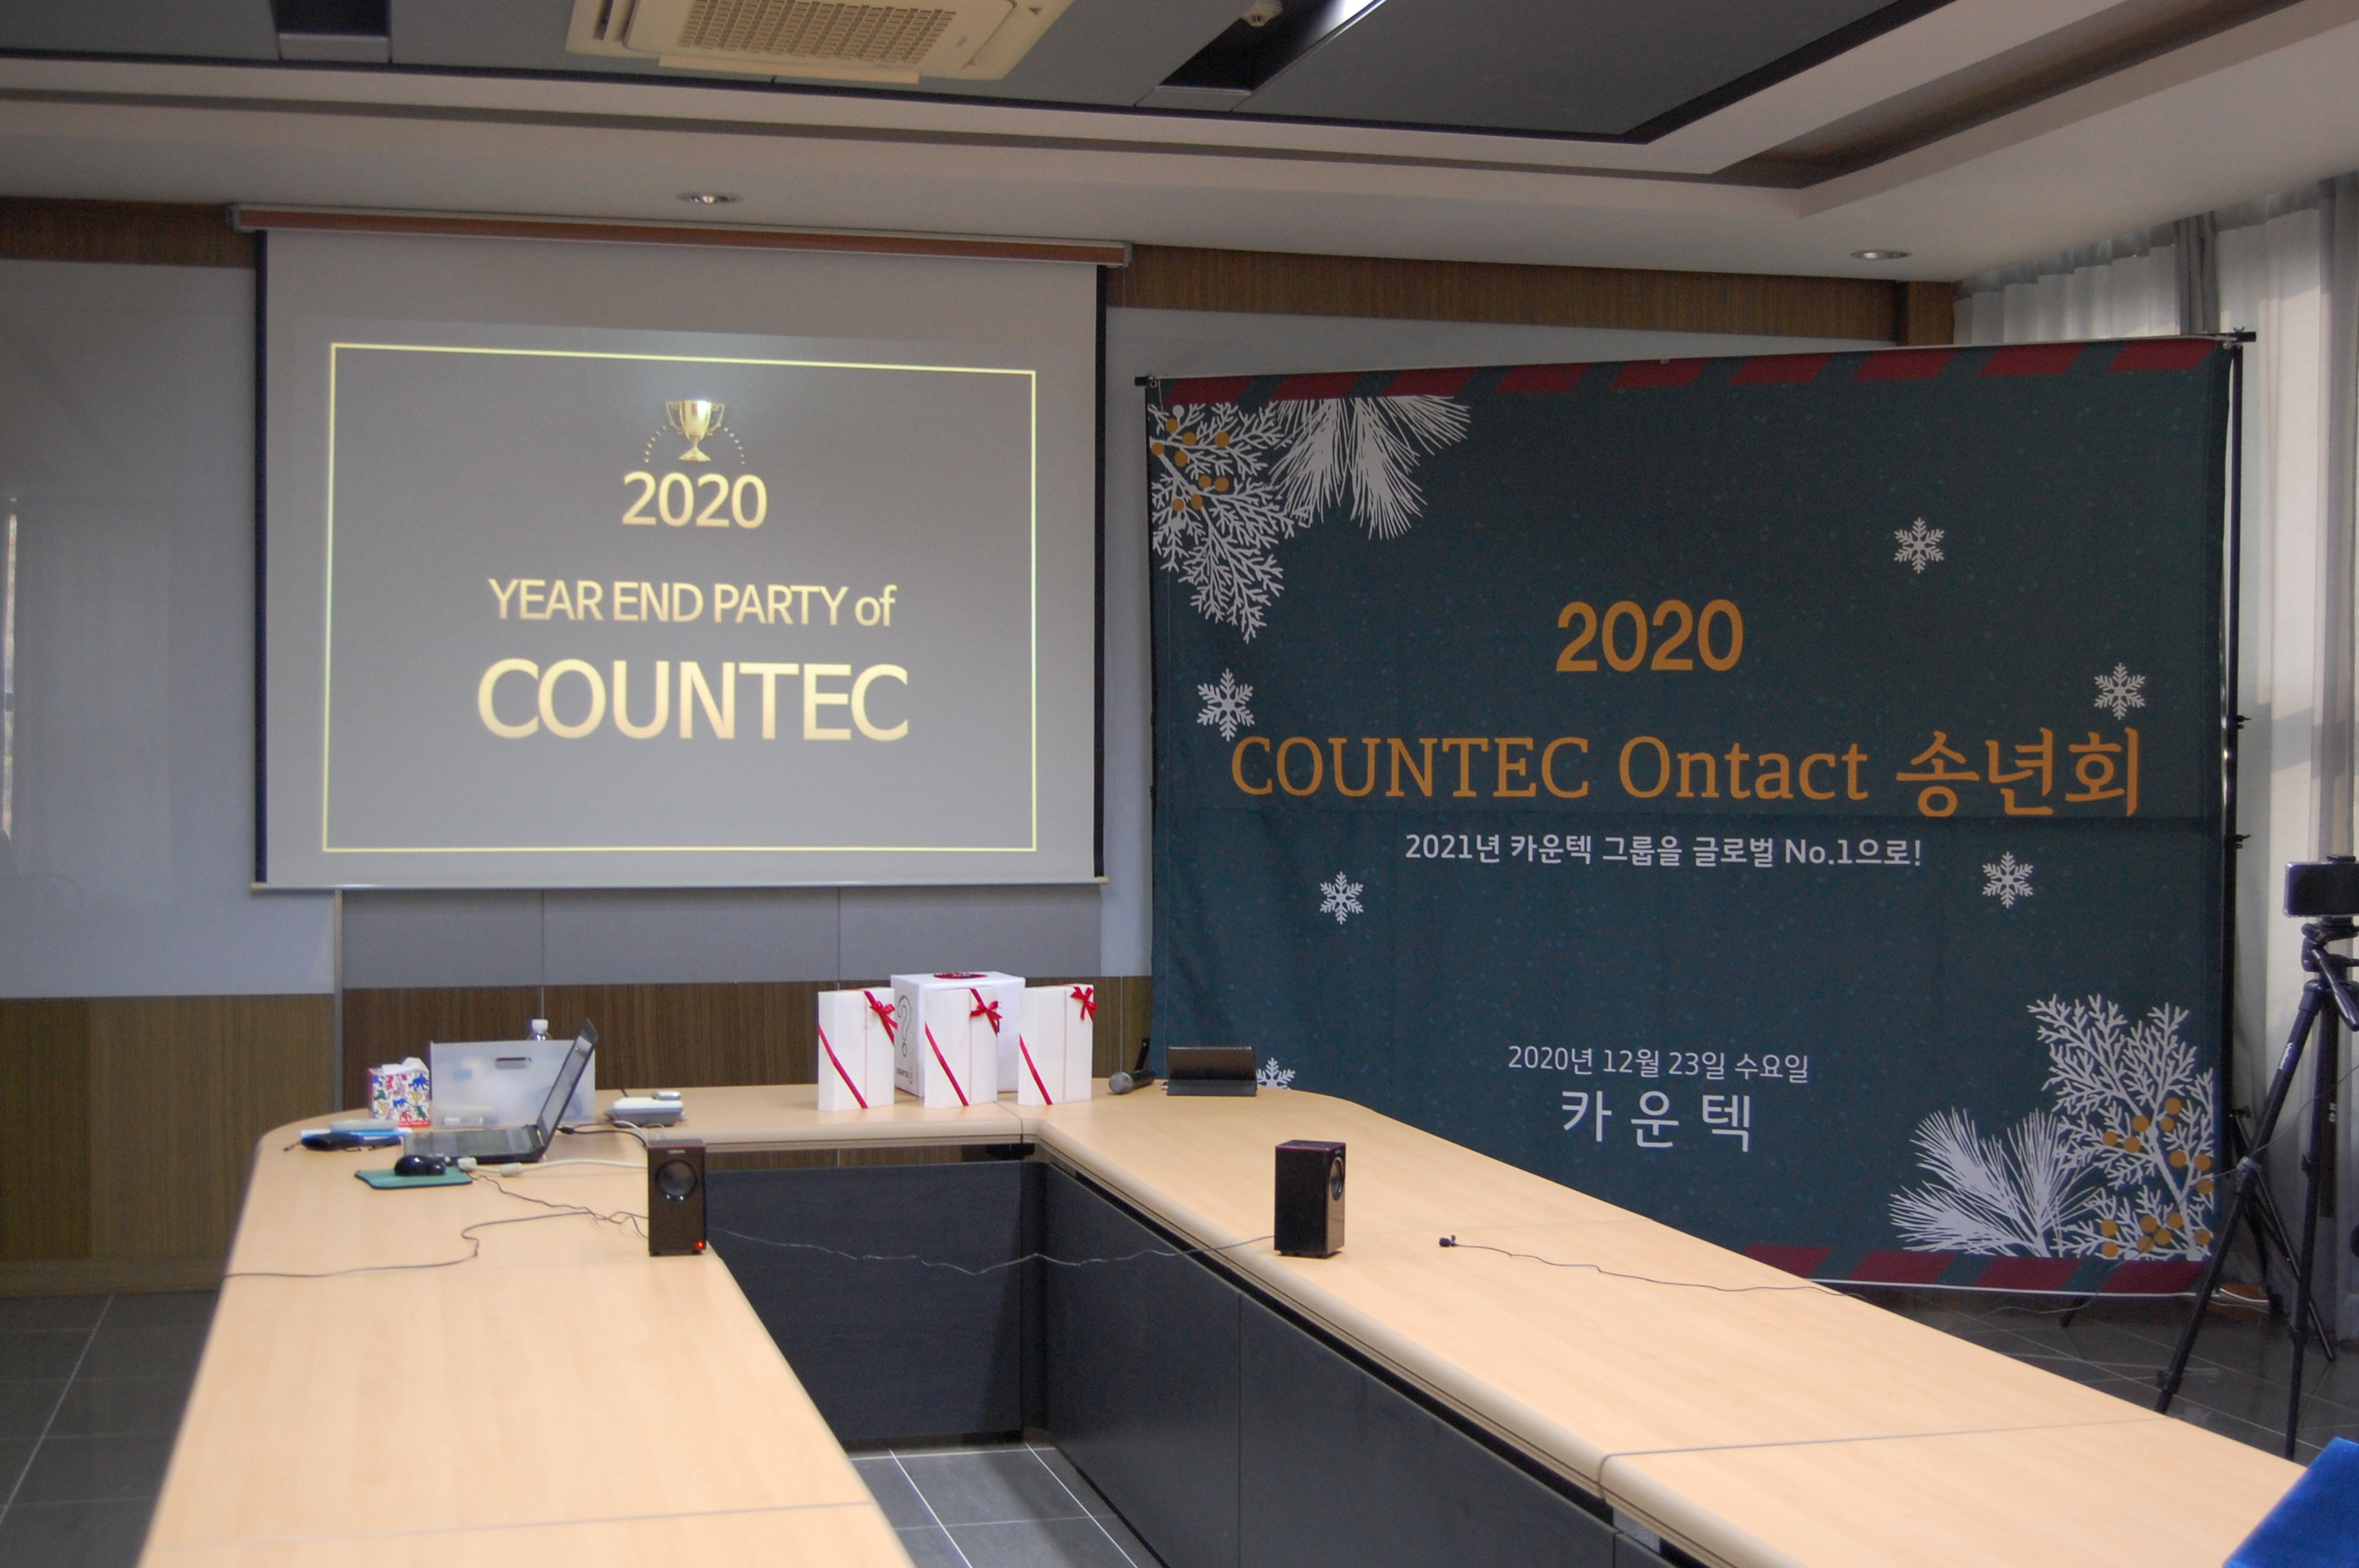 2020 End of year party & 2021 opening ceremony